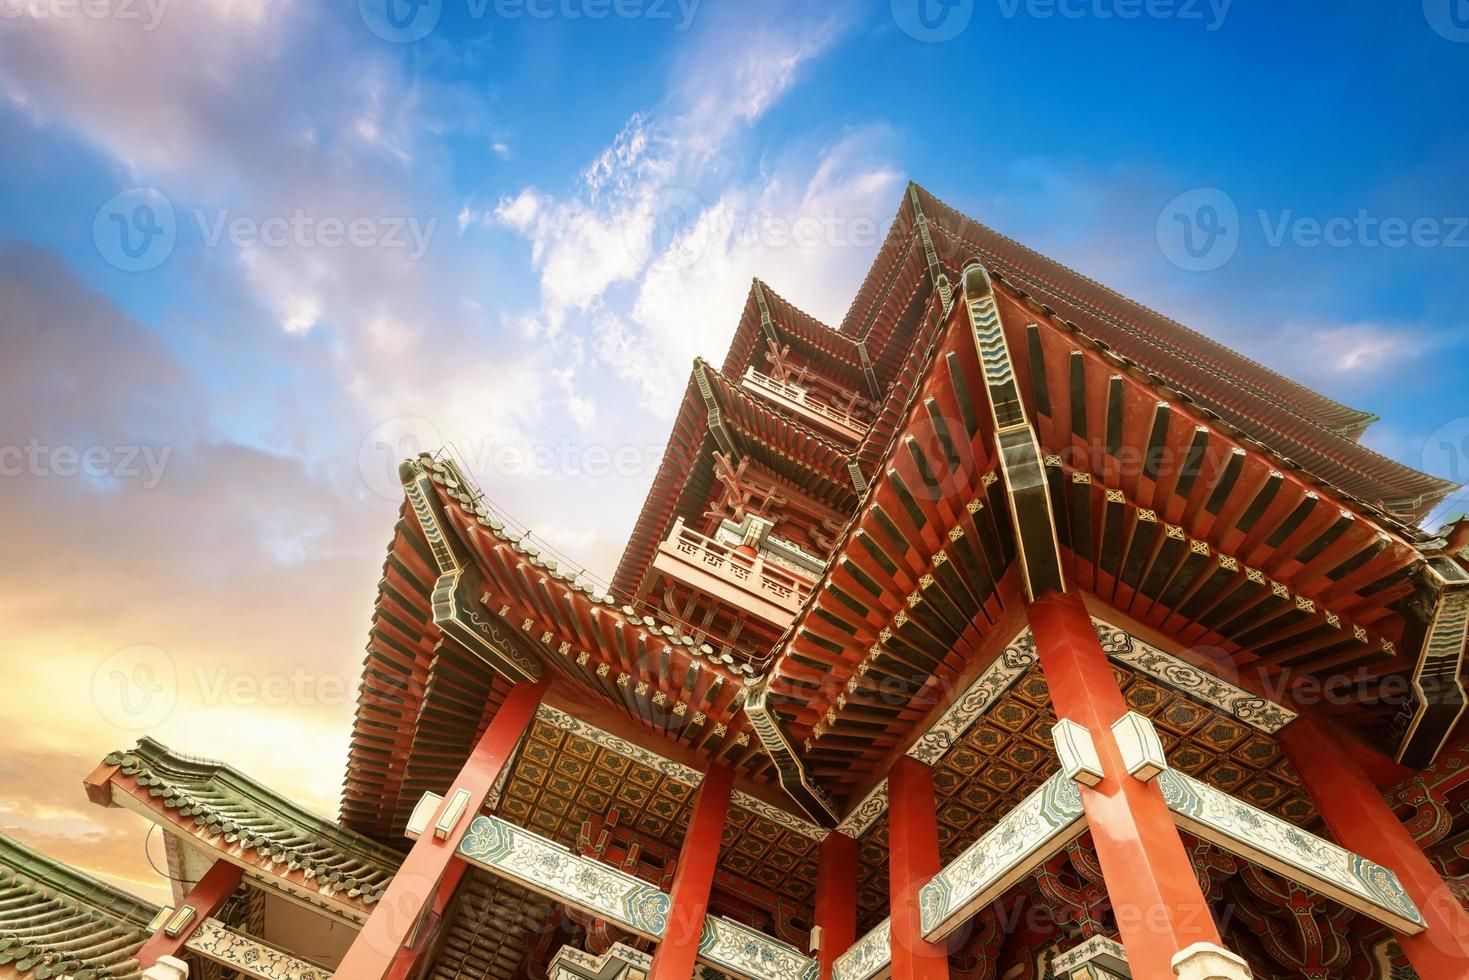 Chinese ancient architecture, ancient religious photo